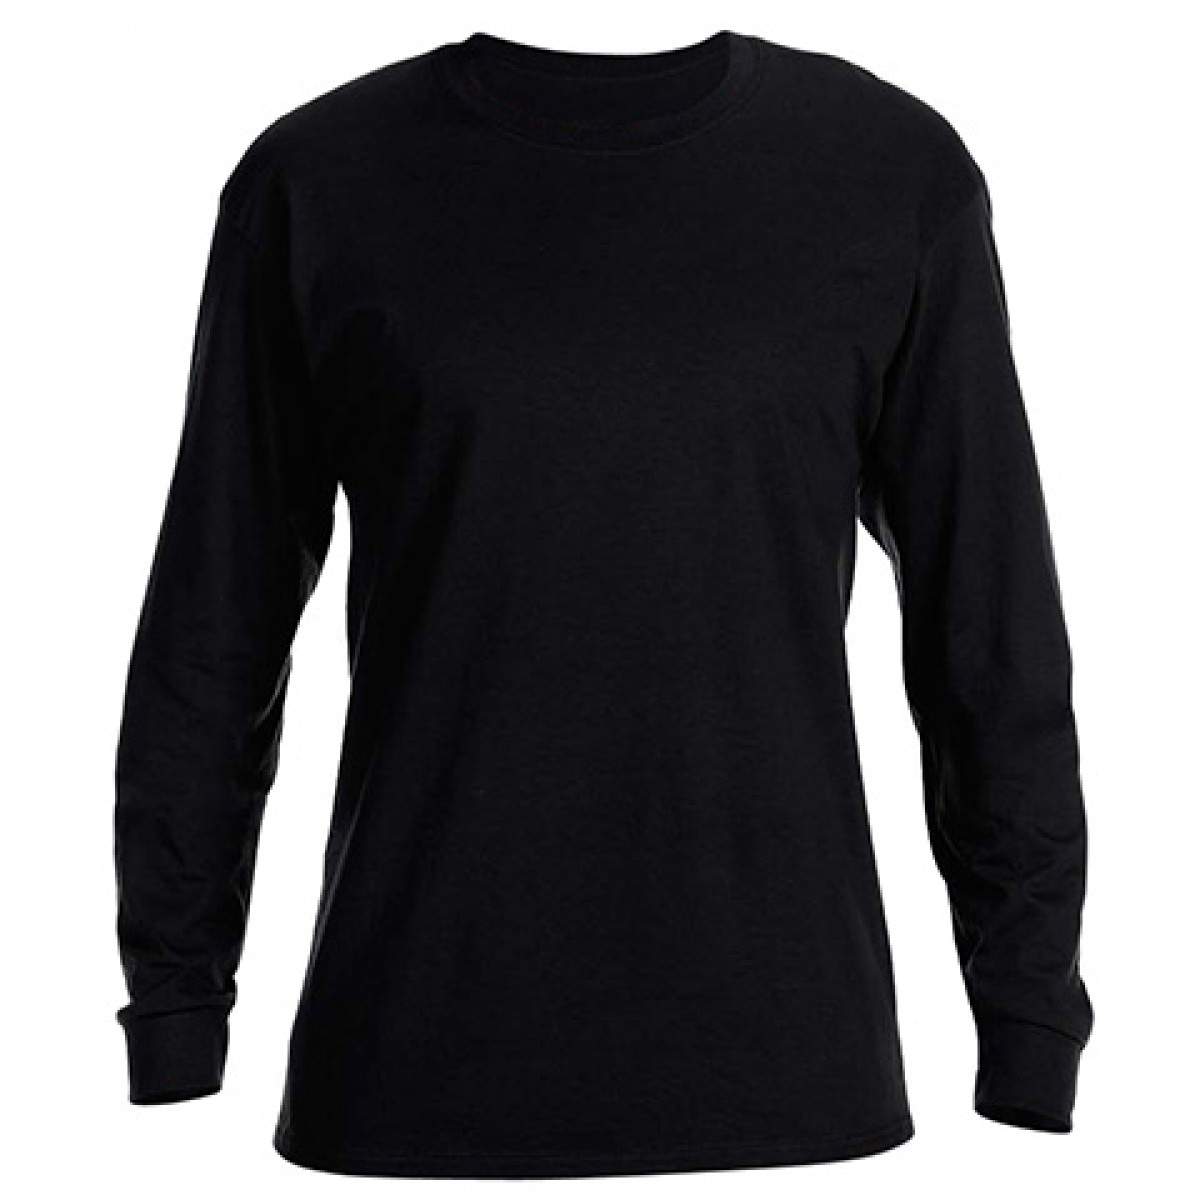 Basic Long Sleeve Crew Neck -Black-S